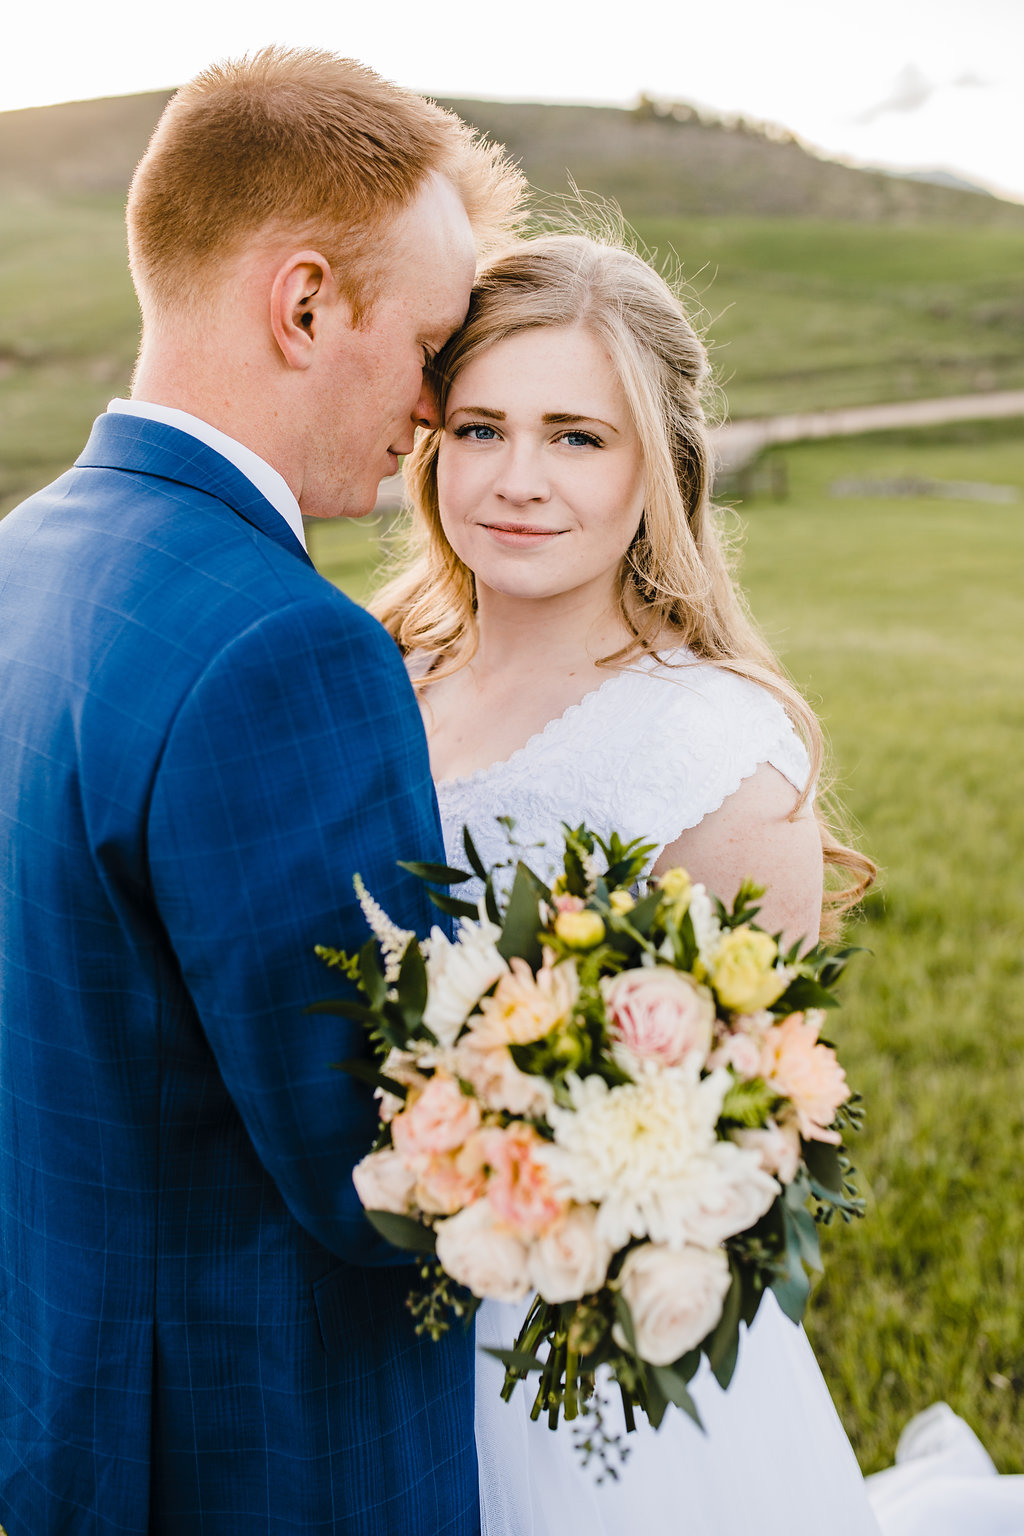 northern utah bright colors wedding photography outdoors wedding photo shoot bride and groom formals photography peach and yellow bridal bouquet wedding florals navy blue suit